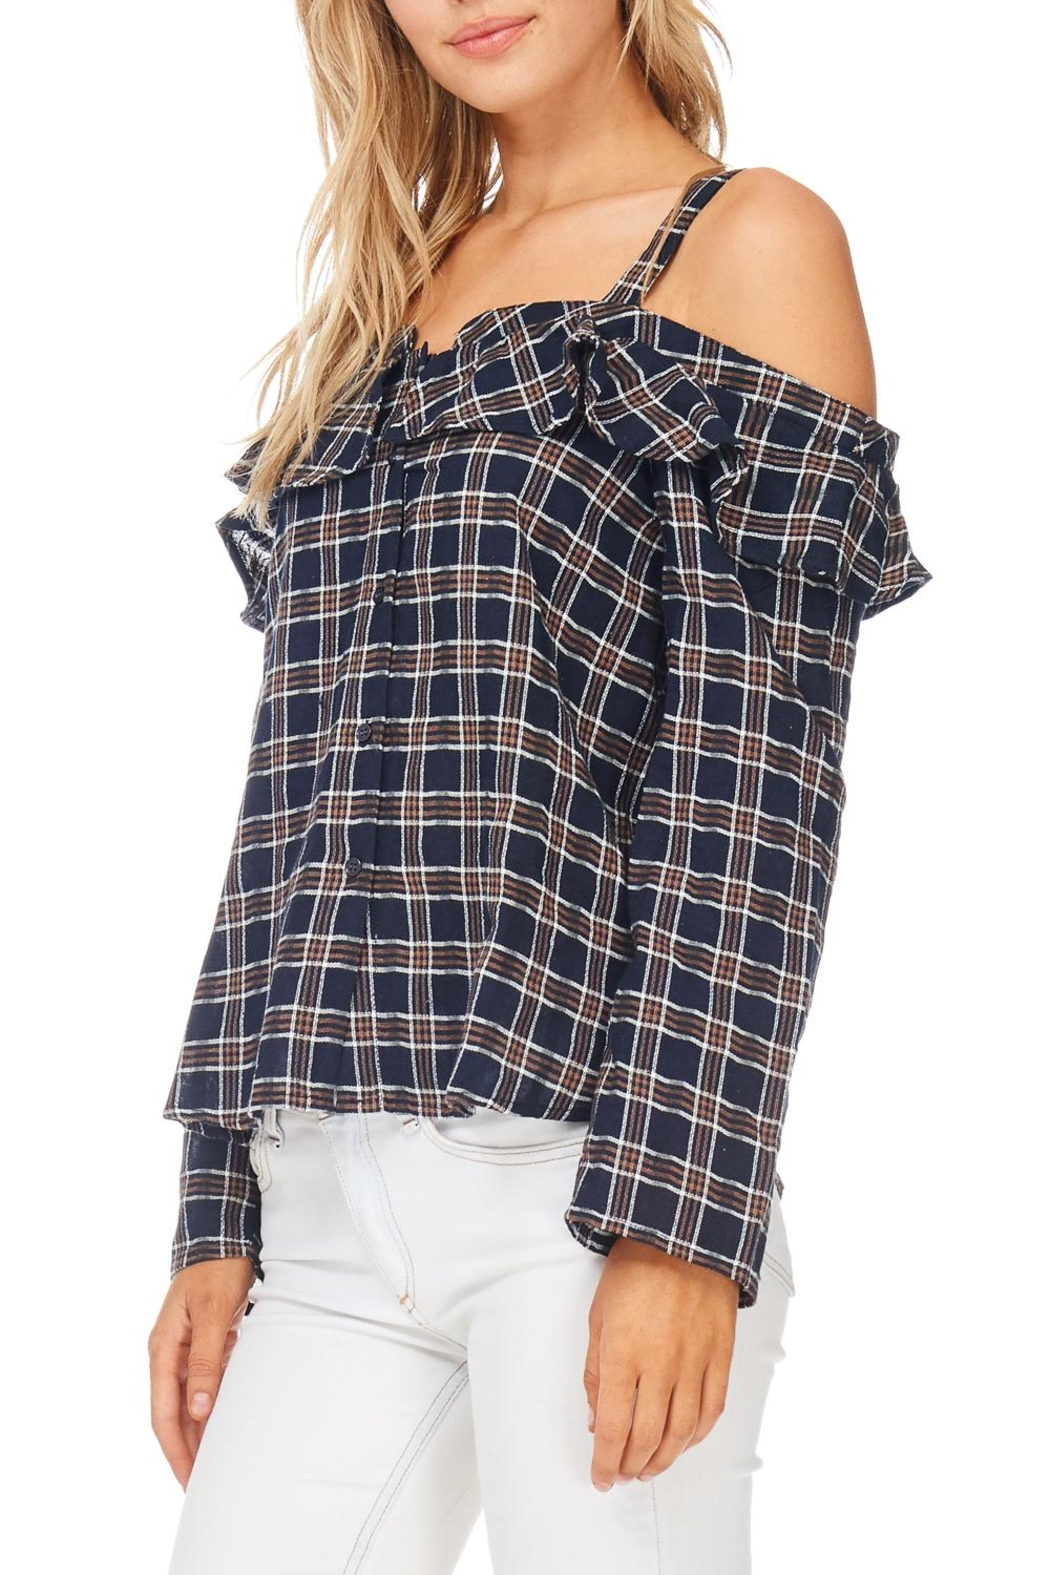 LoveRiche Plaid Ruffle Top - Side Cropped Image